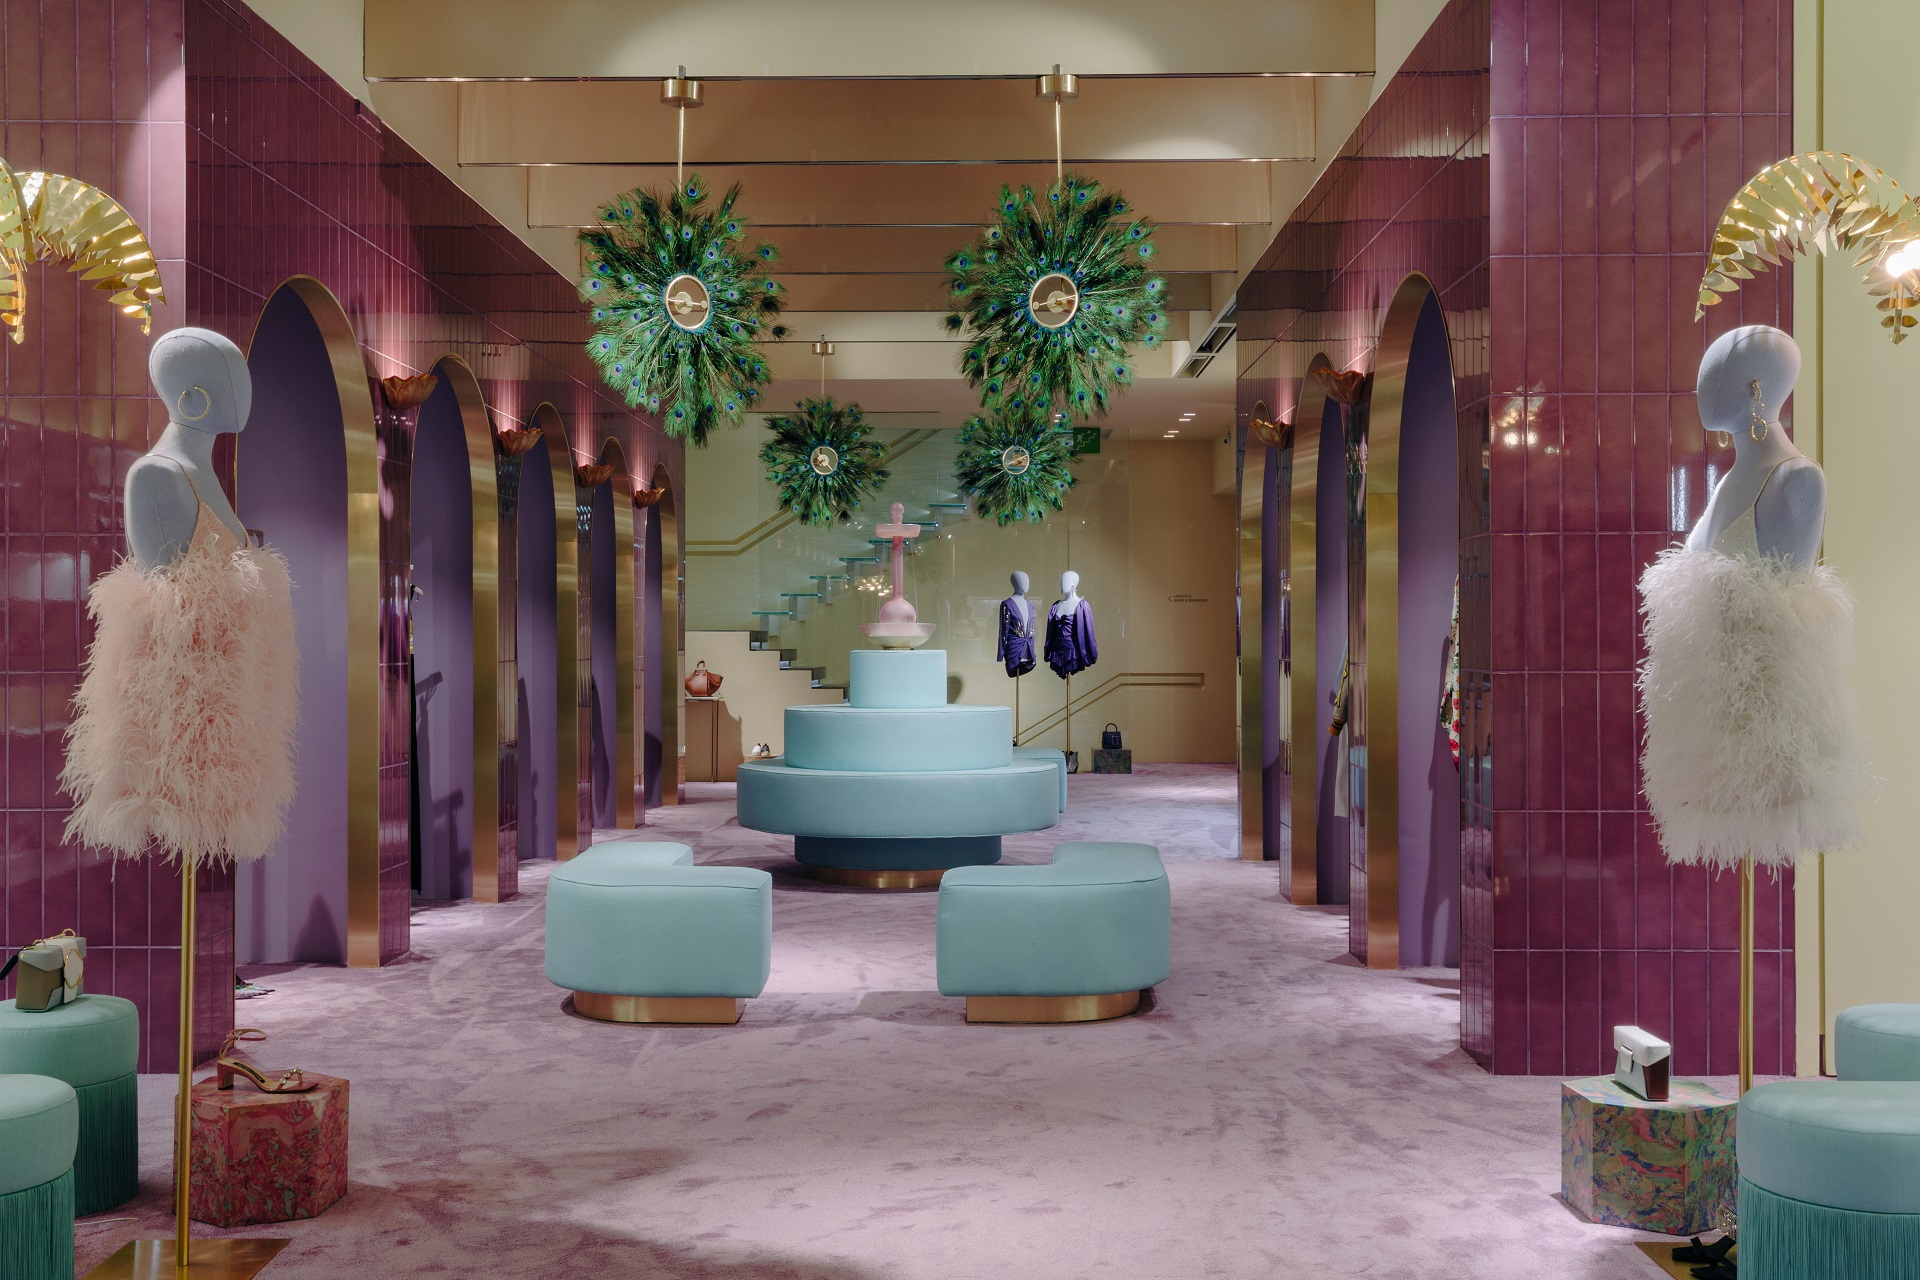 7239bfd8ff Ceramica Bardelli has been chosen by LuisaViaRoma to transform its Florence  store into EDEN, an idyllic and harmonious garden. The interior design was  ...